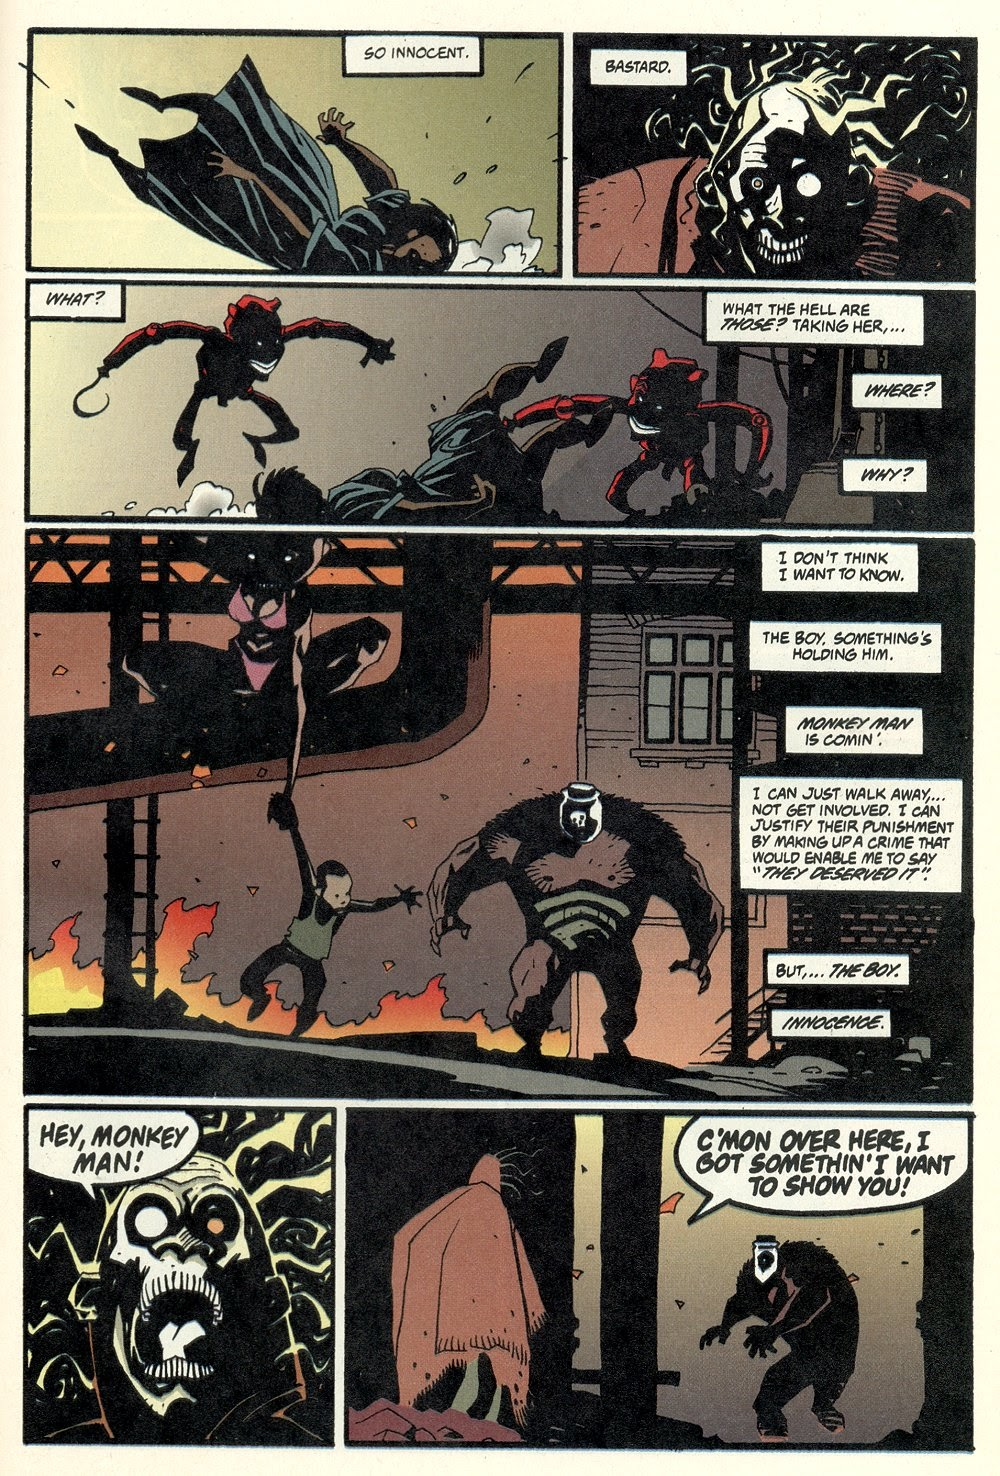 Read online Ted McKeever's Metropol comic -  Issue #11 - 27